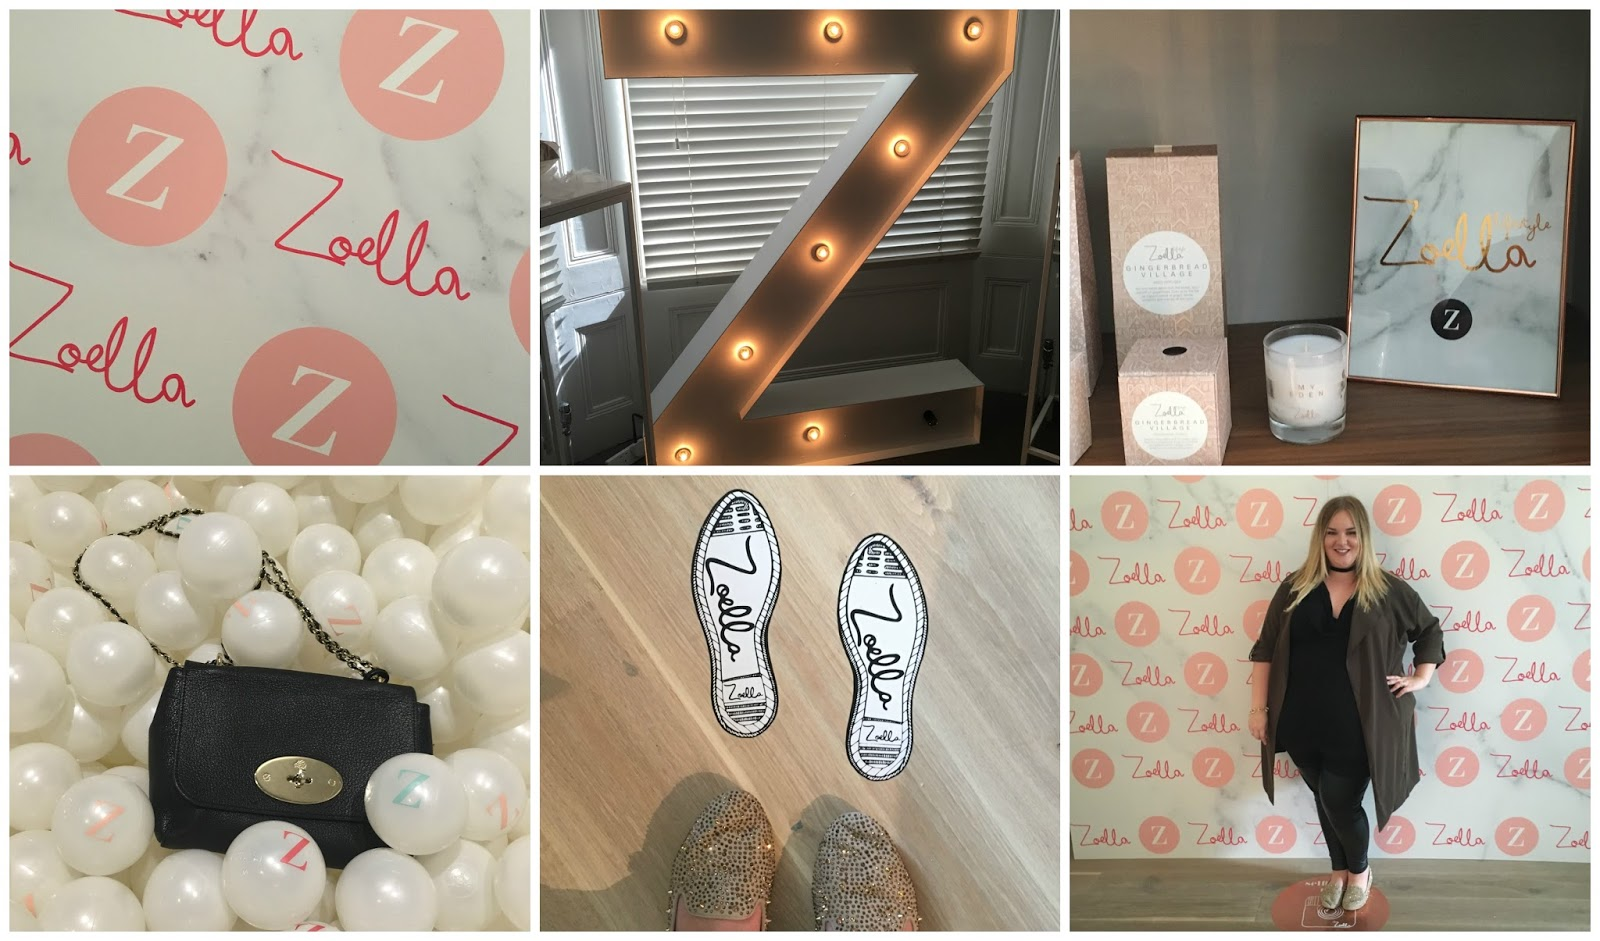 Zoella Apartment Image